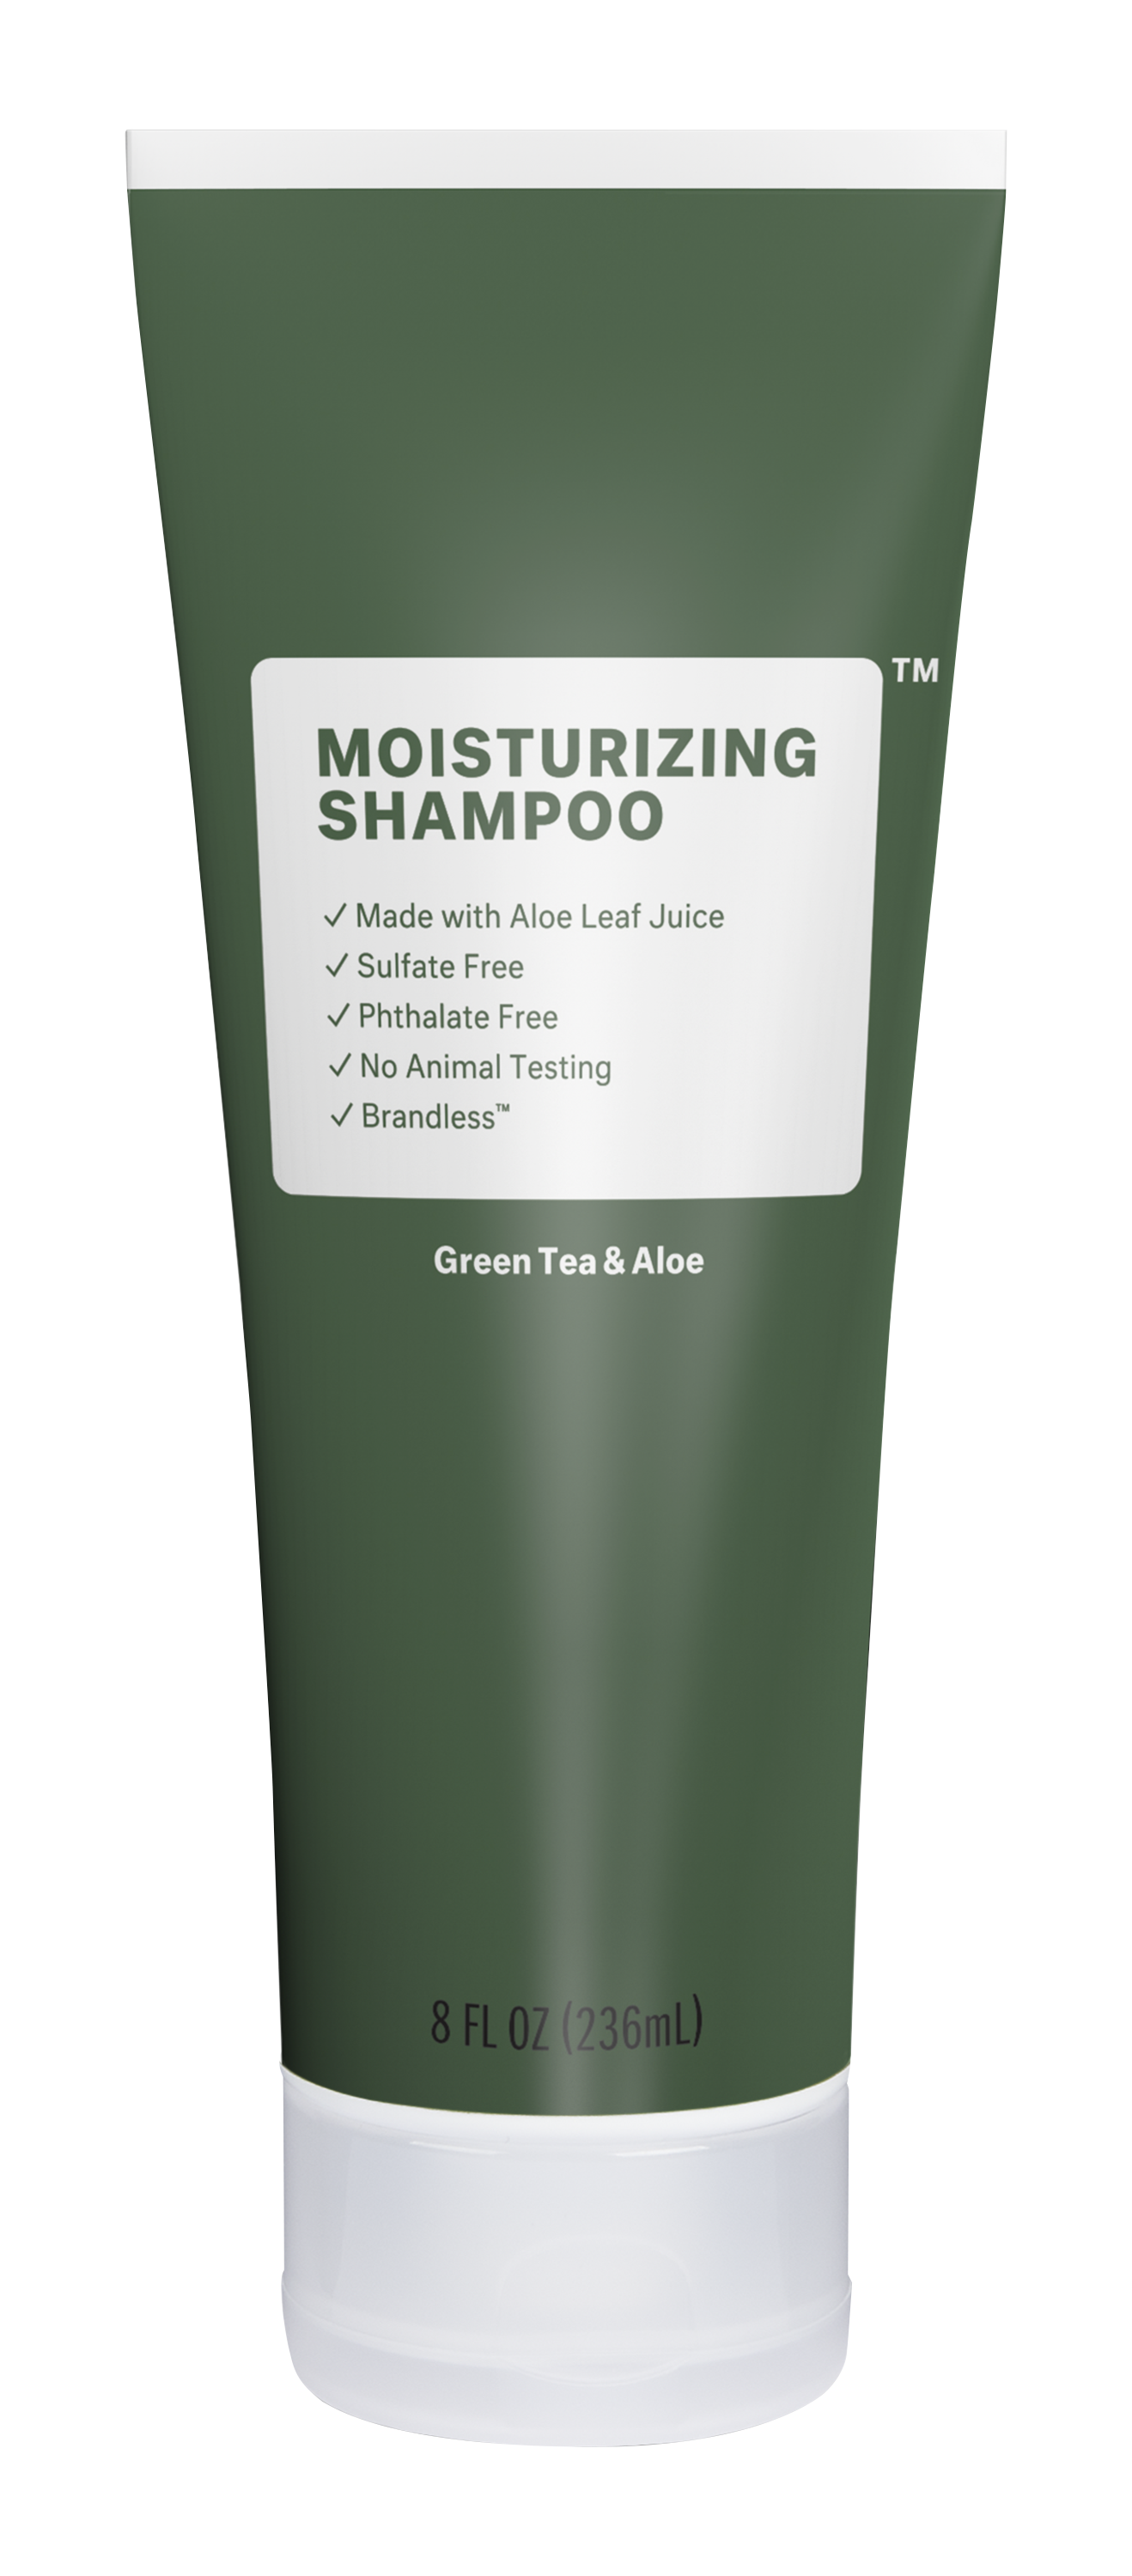 Brandless: Moisturizing Shampoo, Green Tea & Aloe